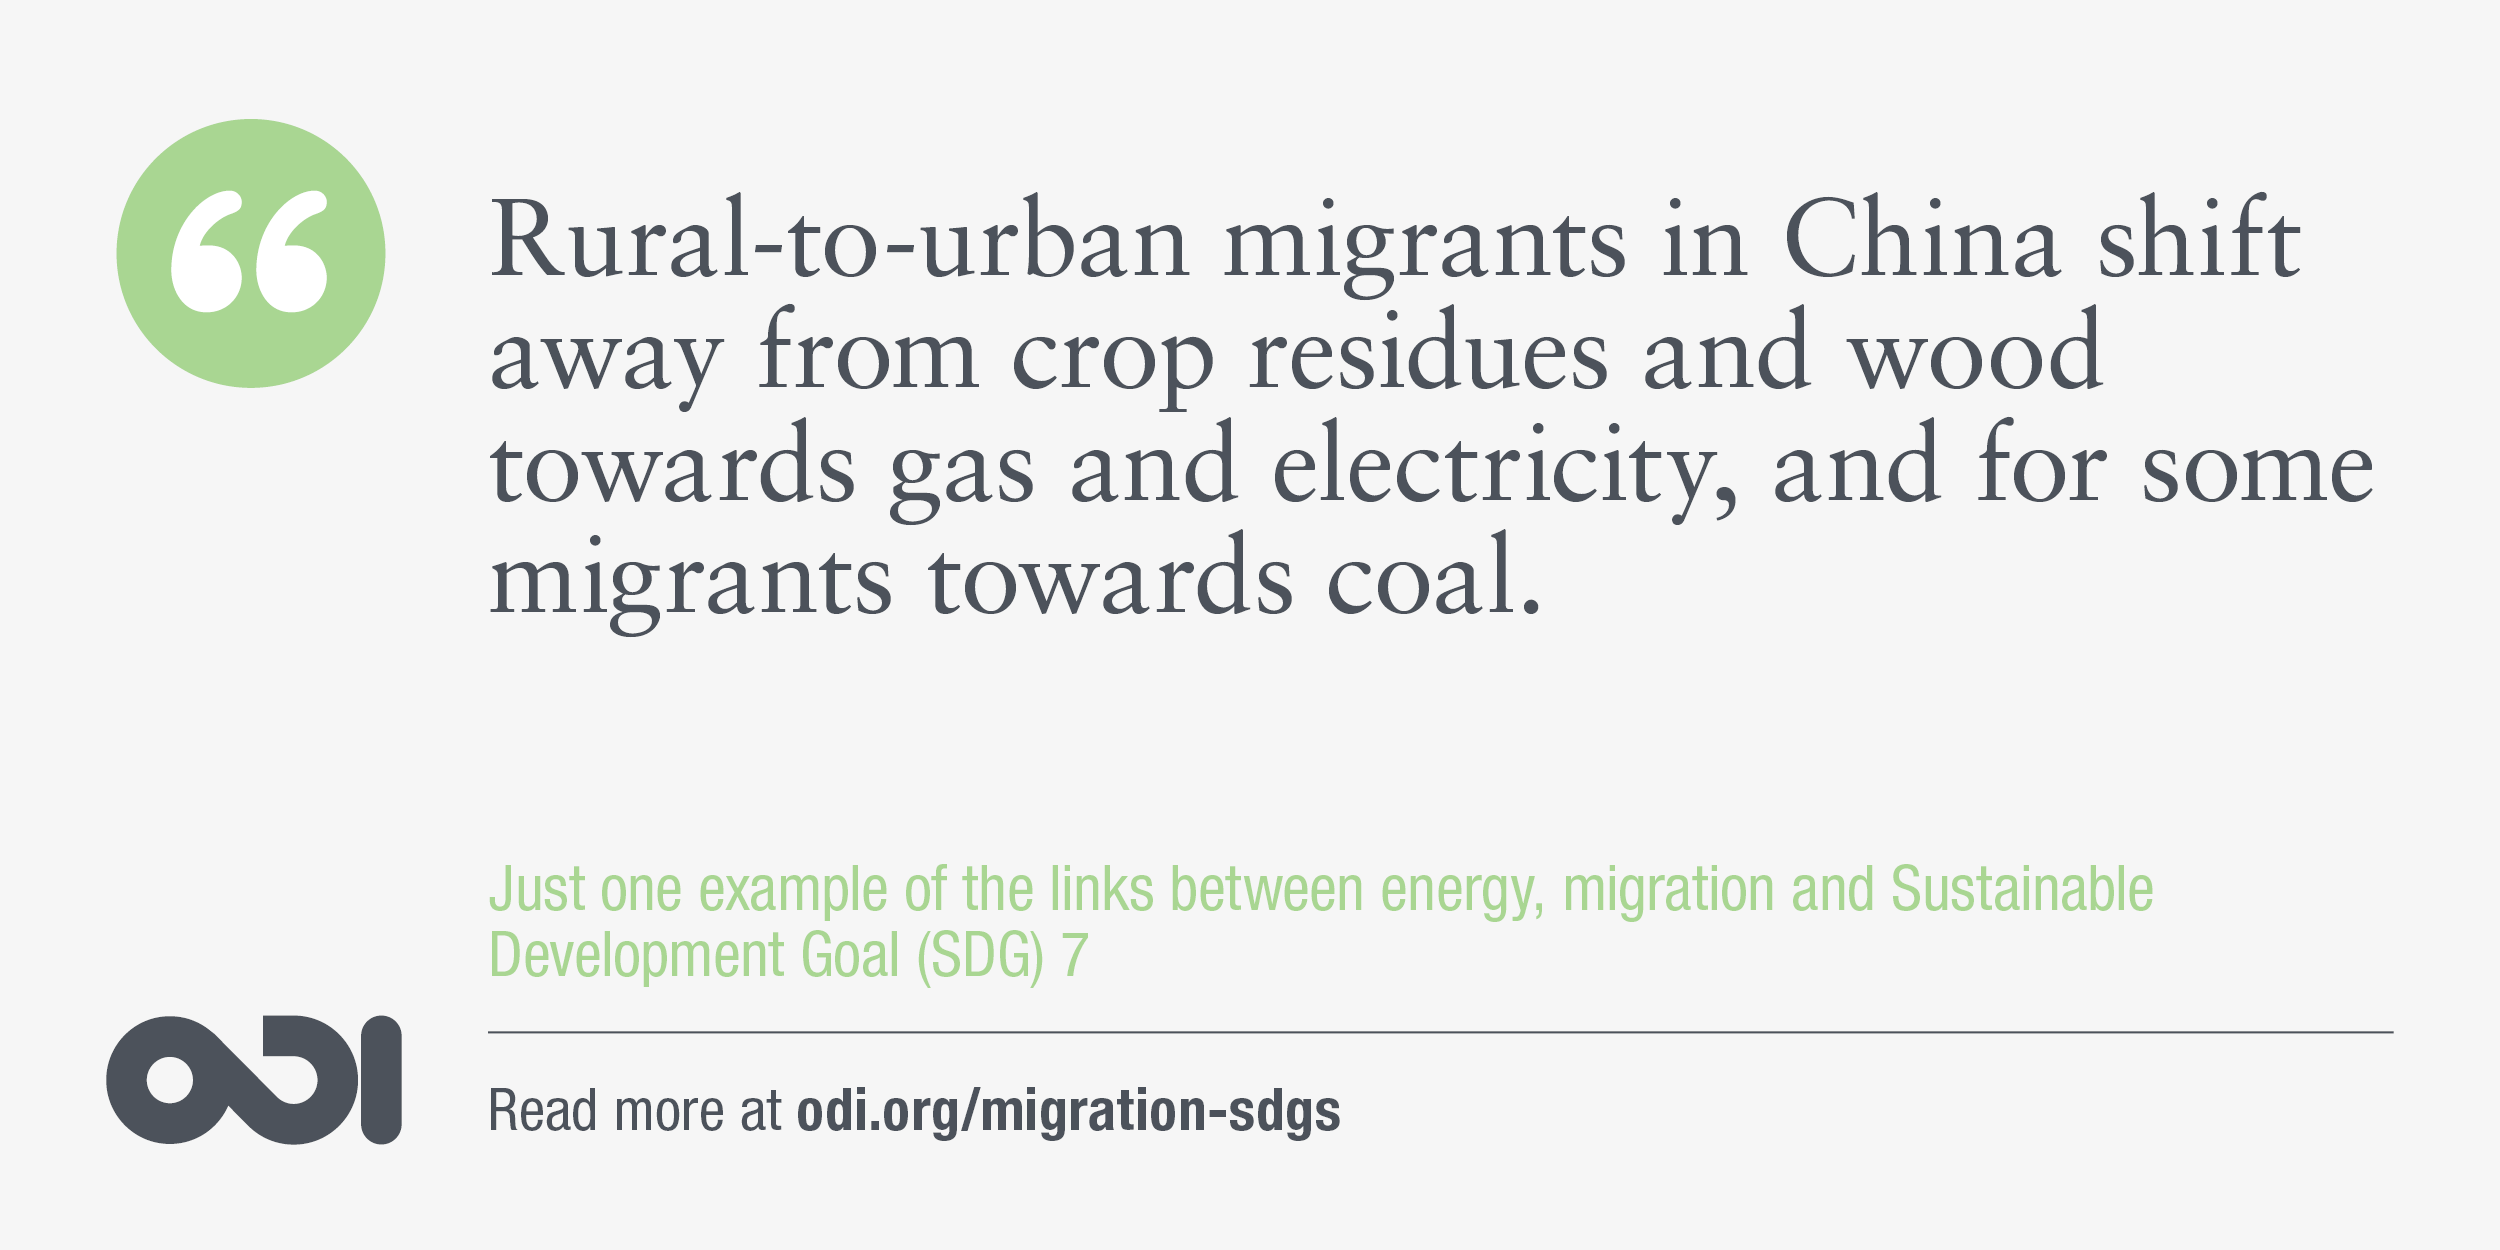 The links between energy, migration and SDG 7.